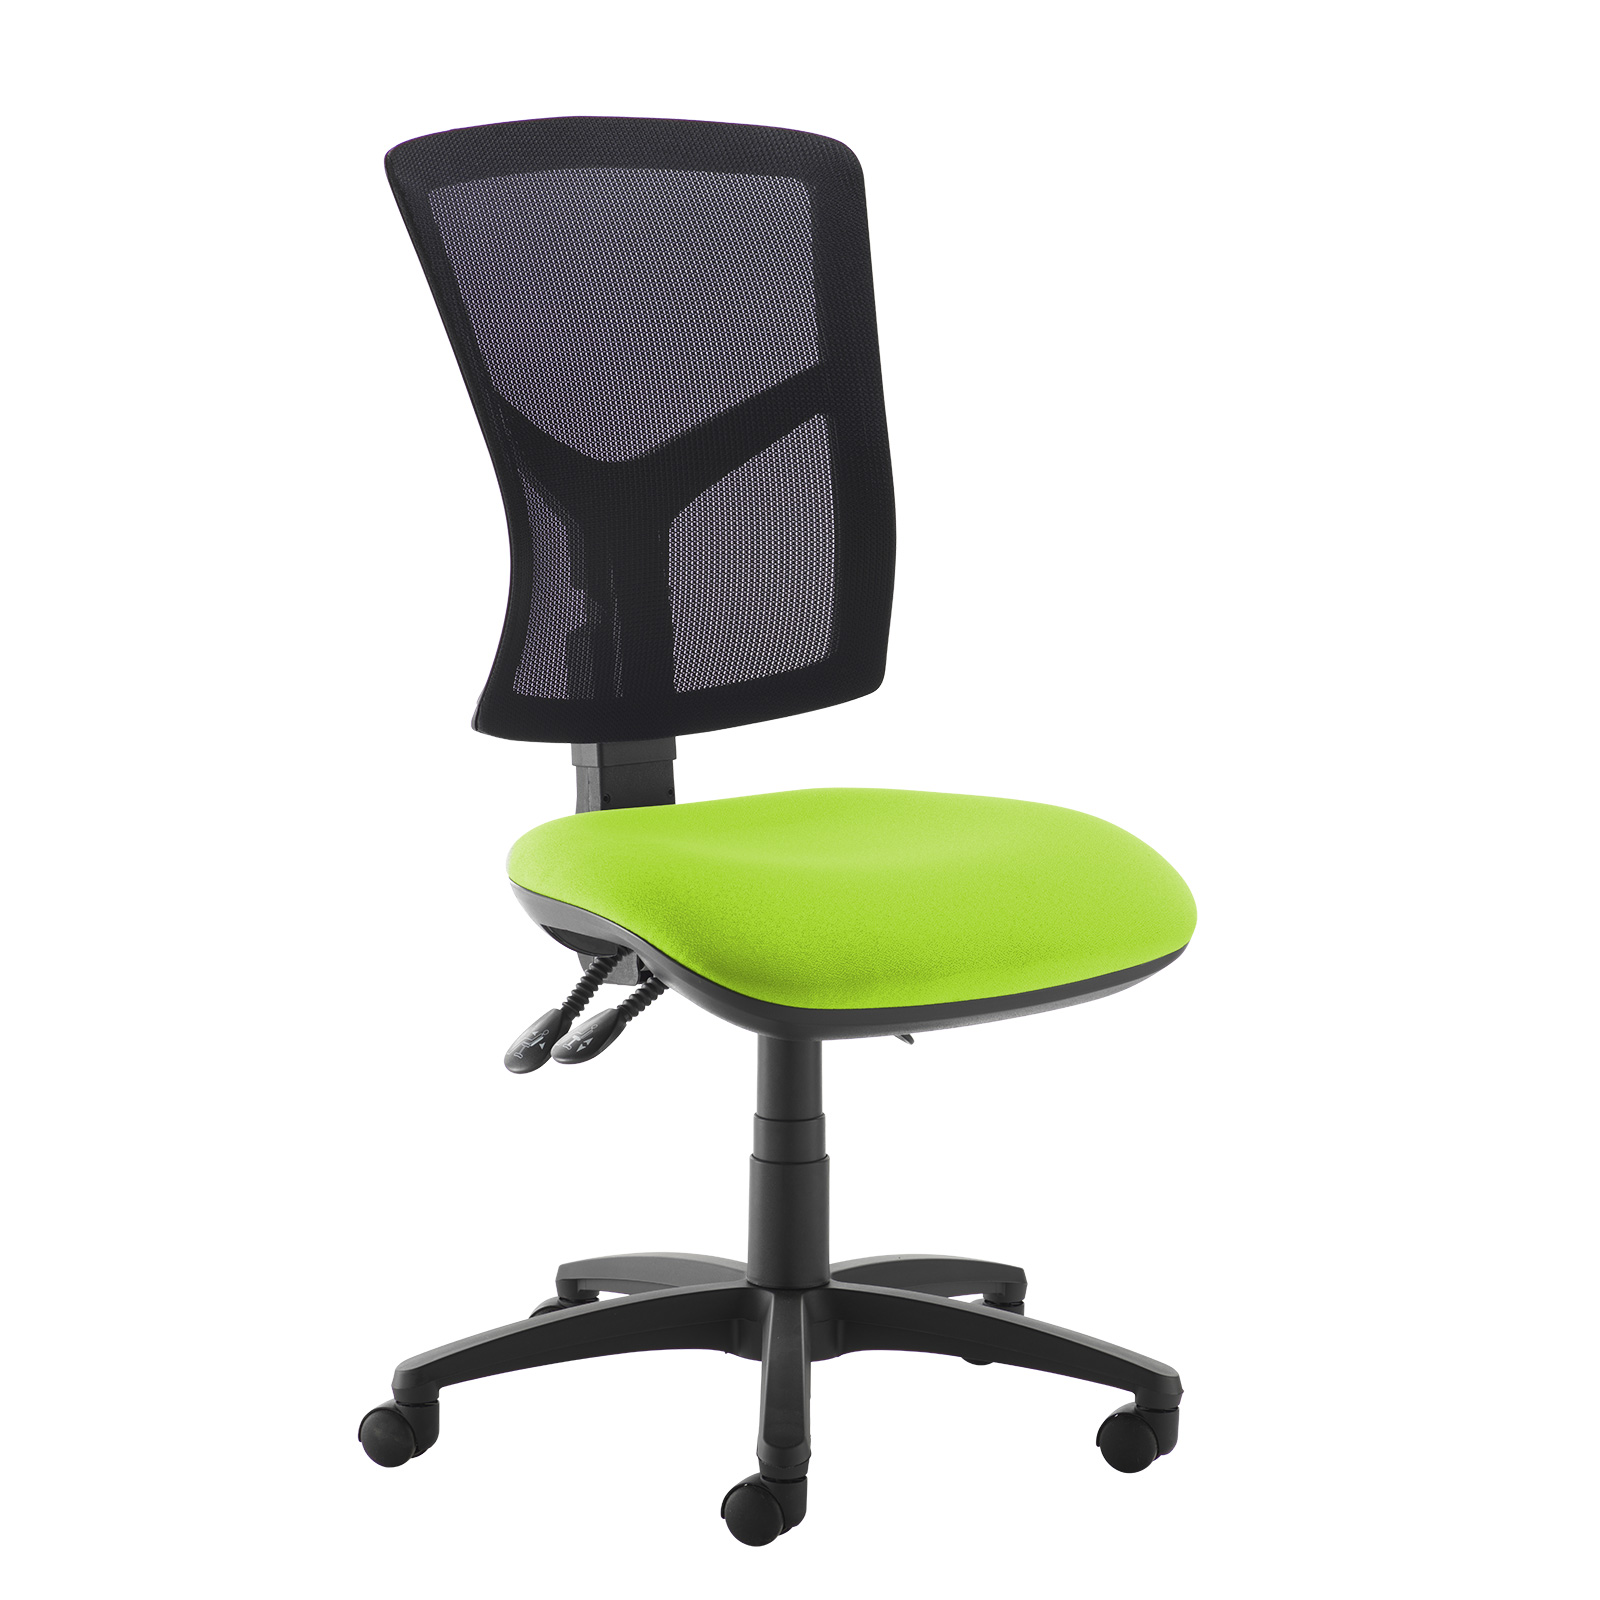 Senza high mesh back operator chair with no arms - green